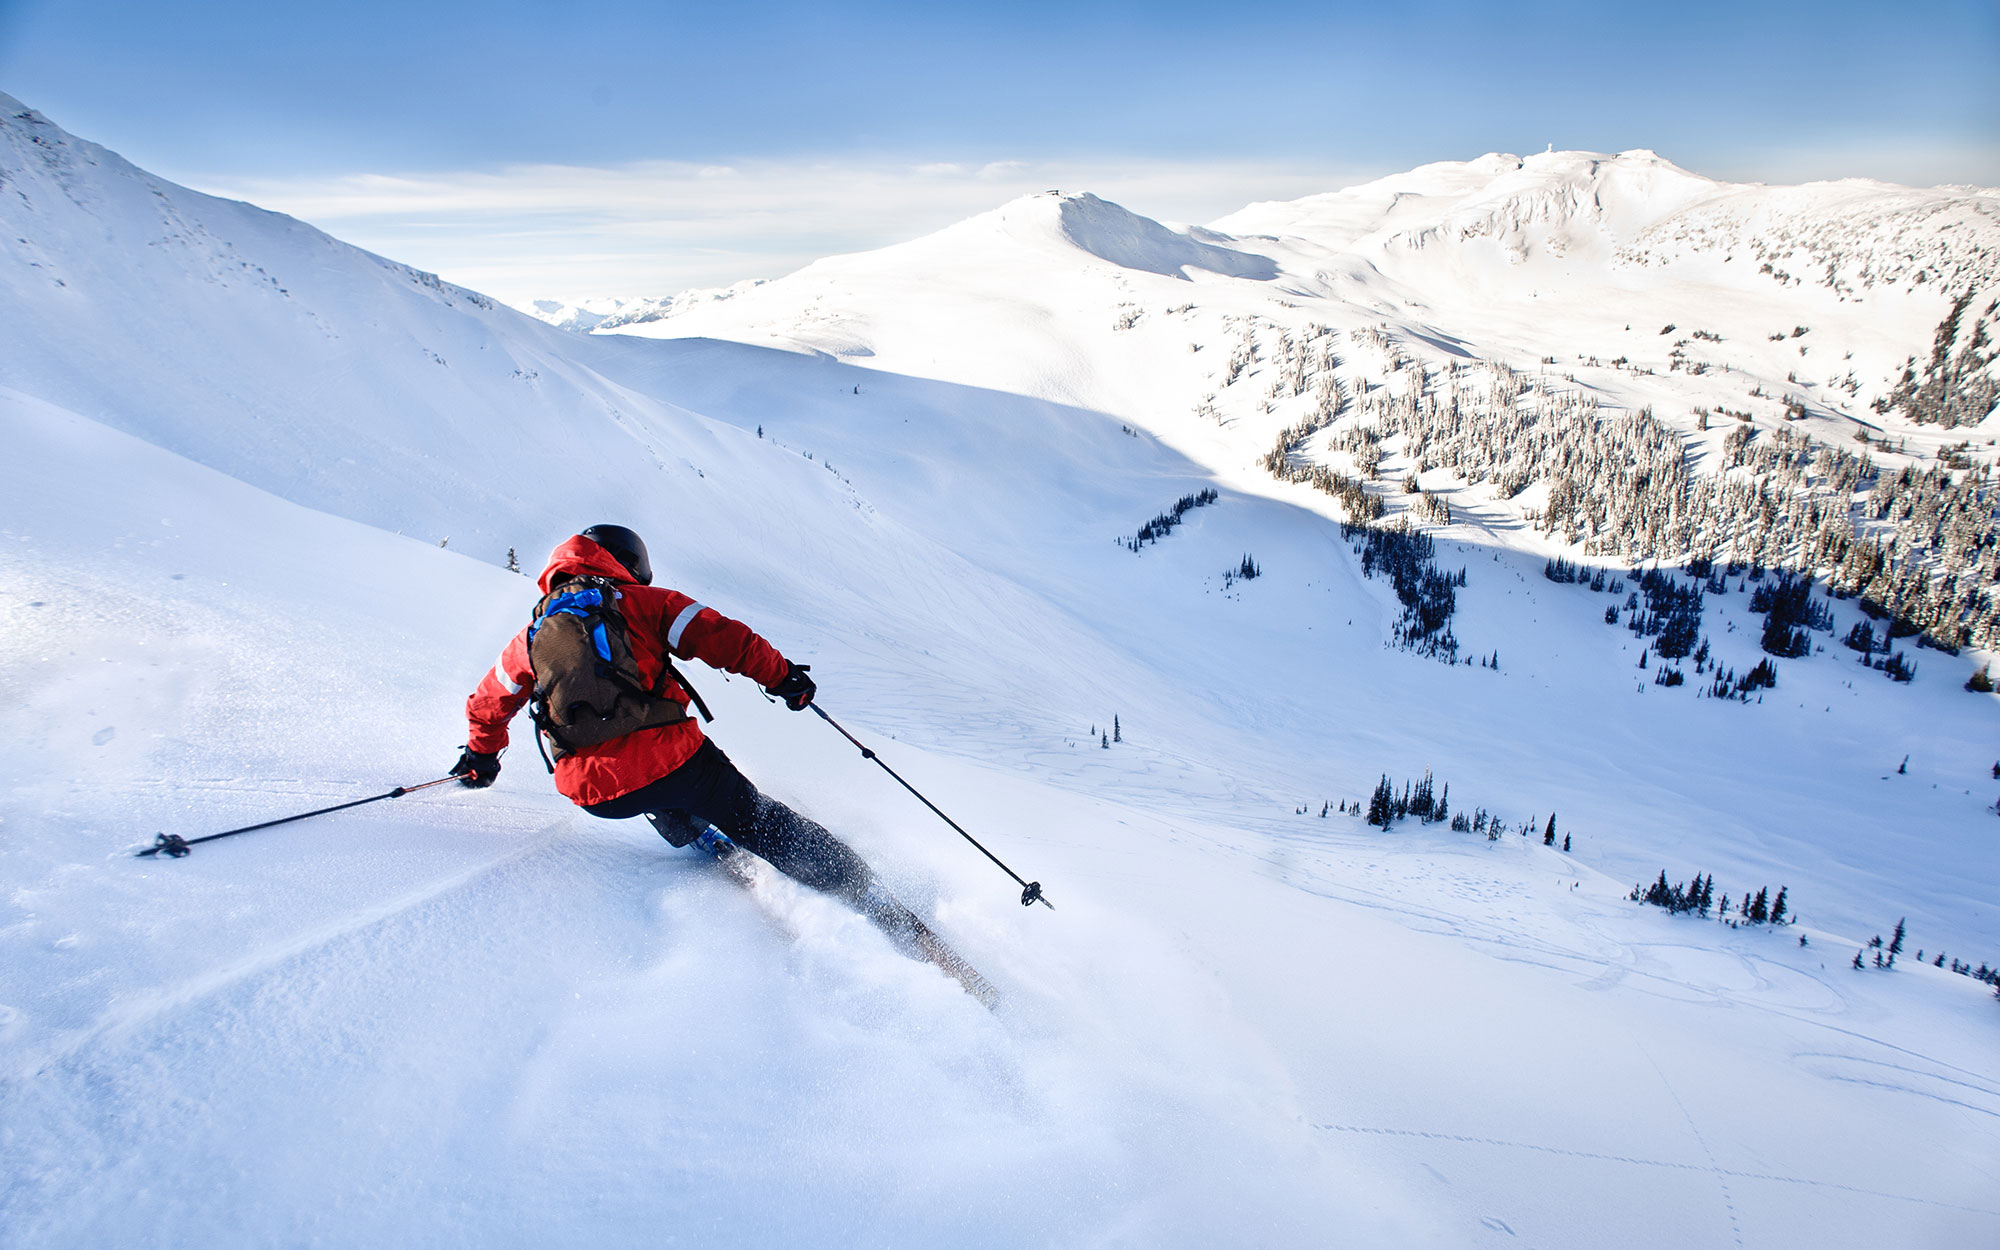 How To Find the Best Snow Conditions